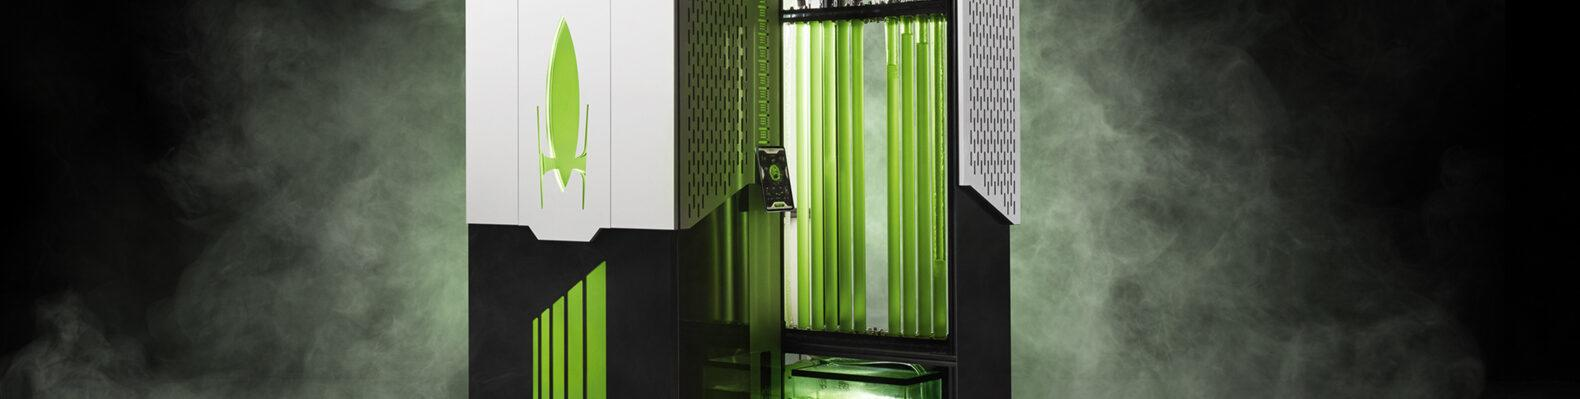 rendering of algae bioreactor on a smoky background